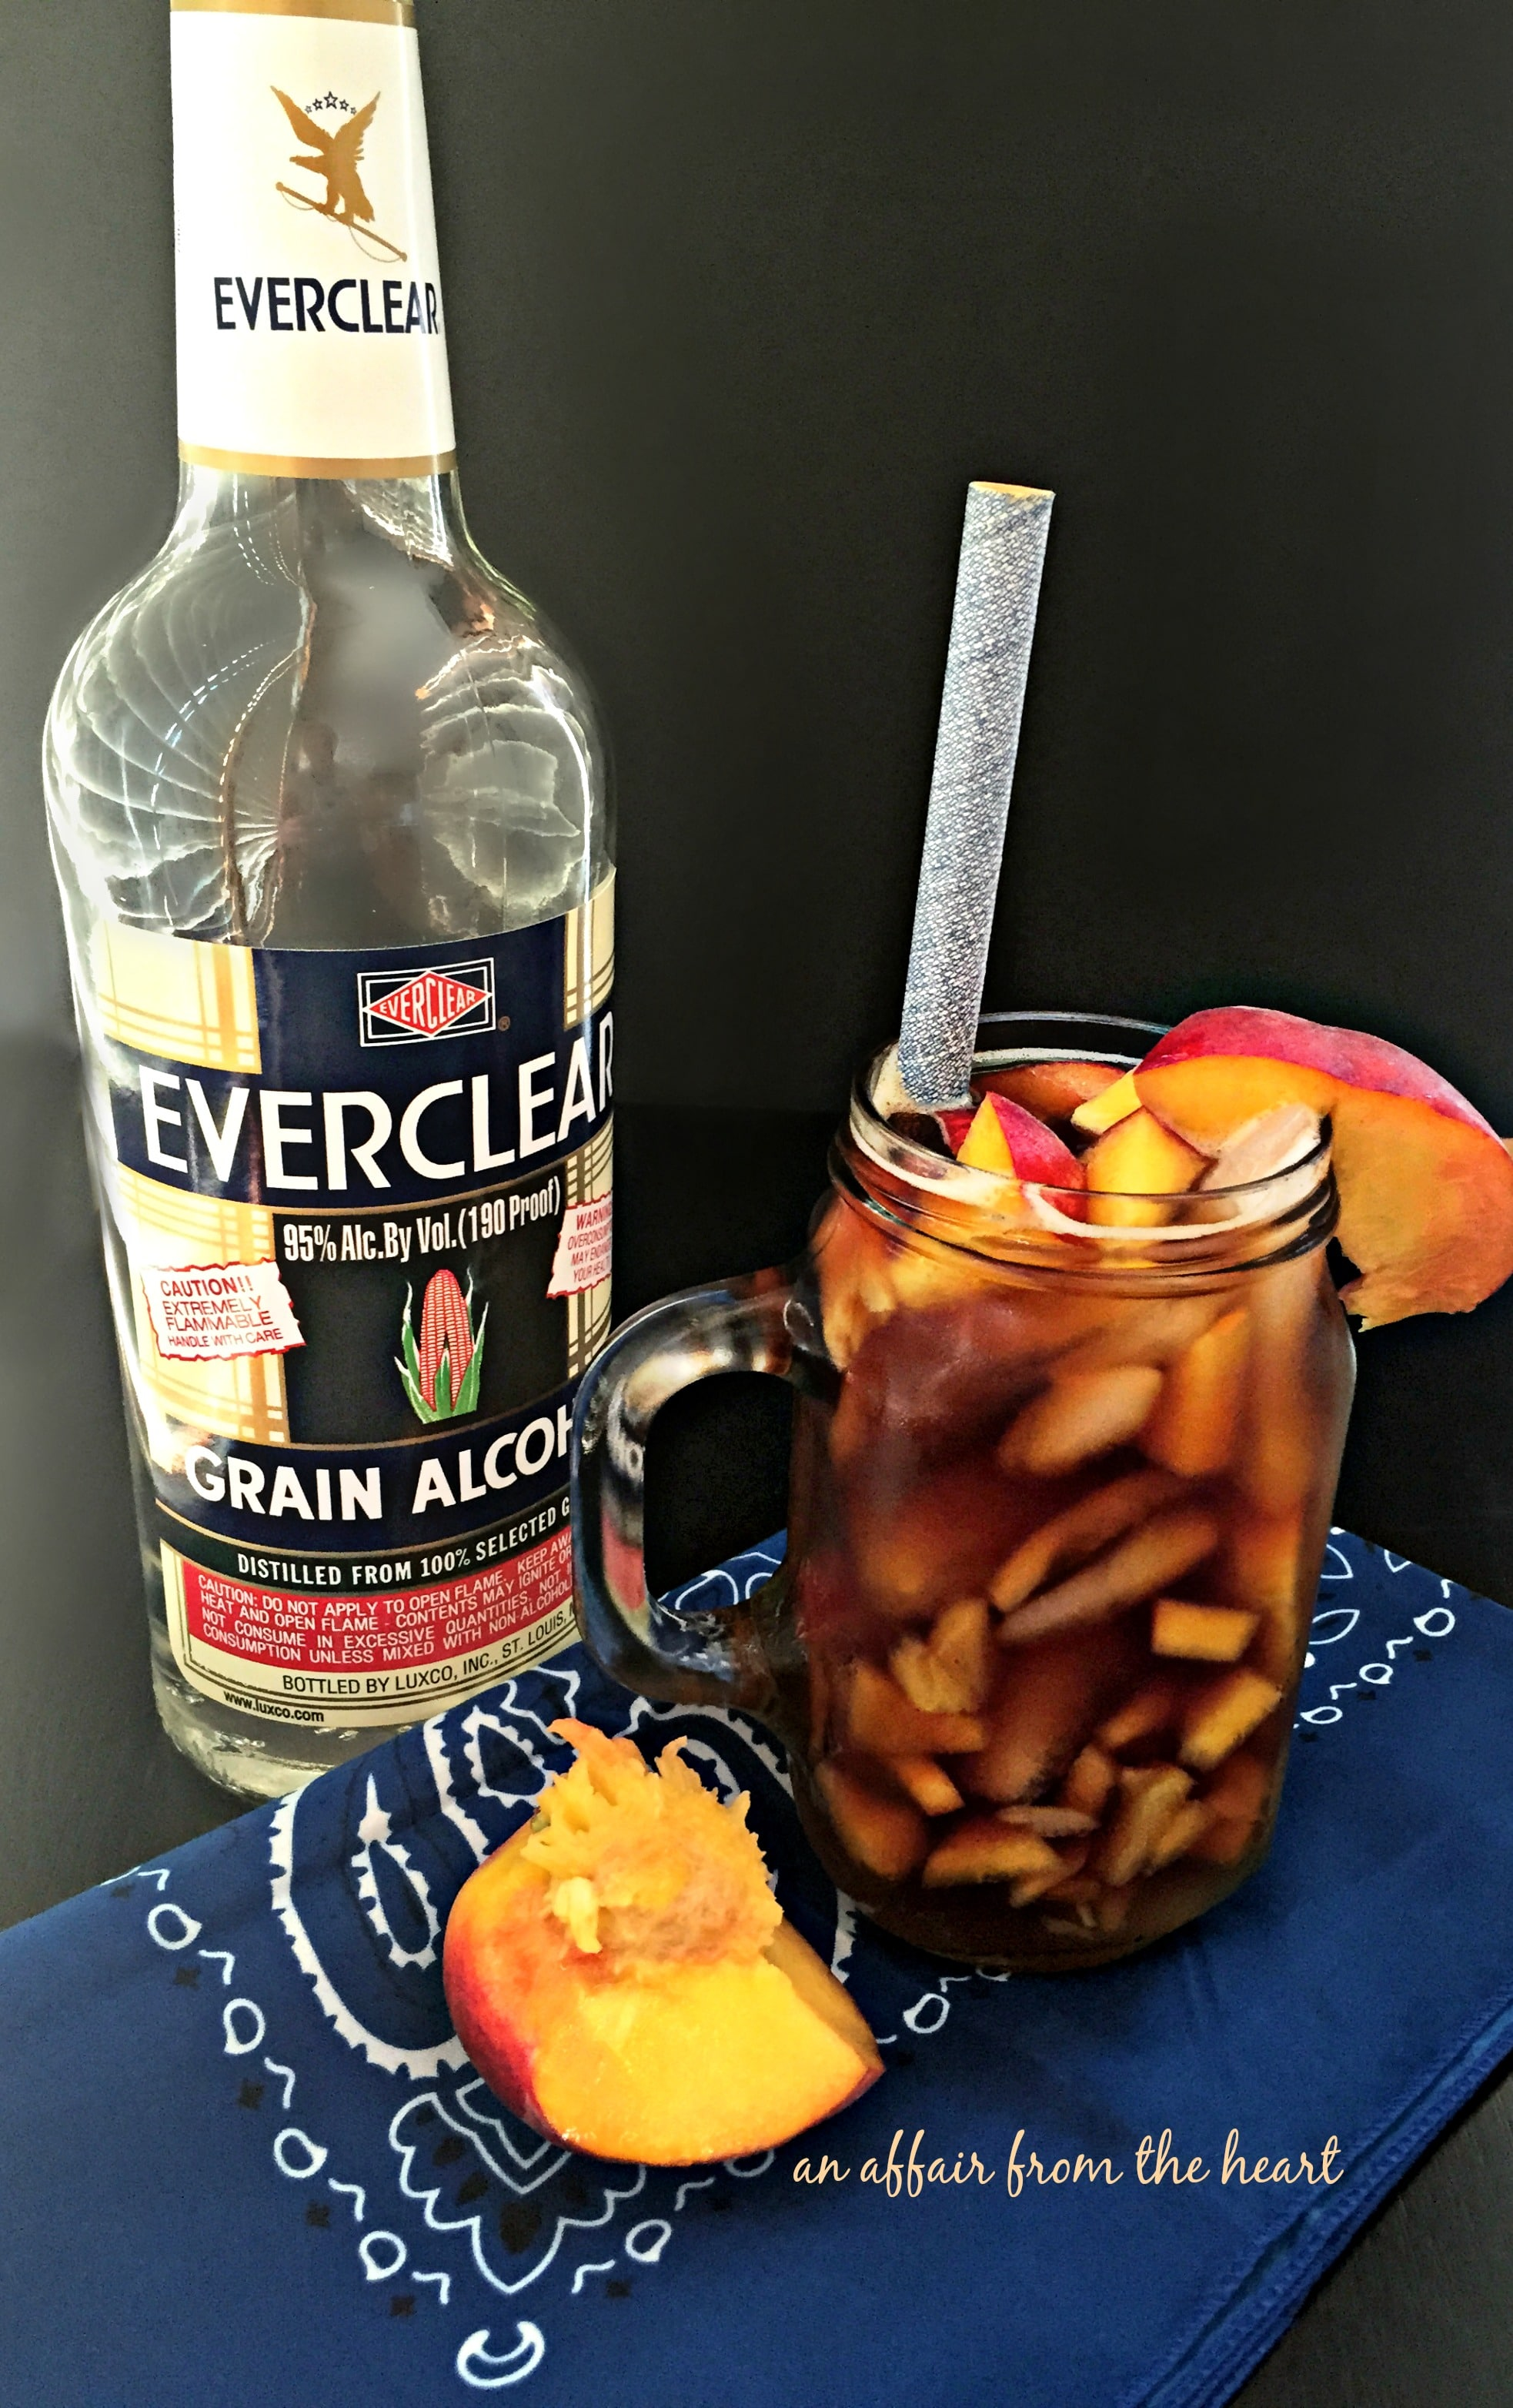 Everclear® is neutral grain alcohol. Giving it the unique ability to ...